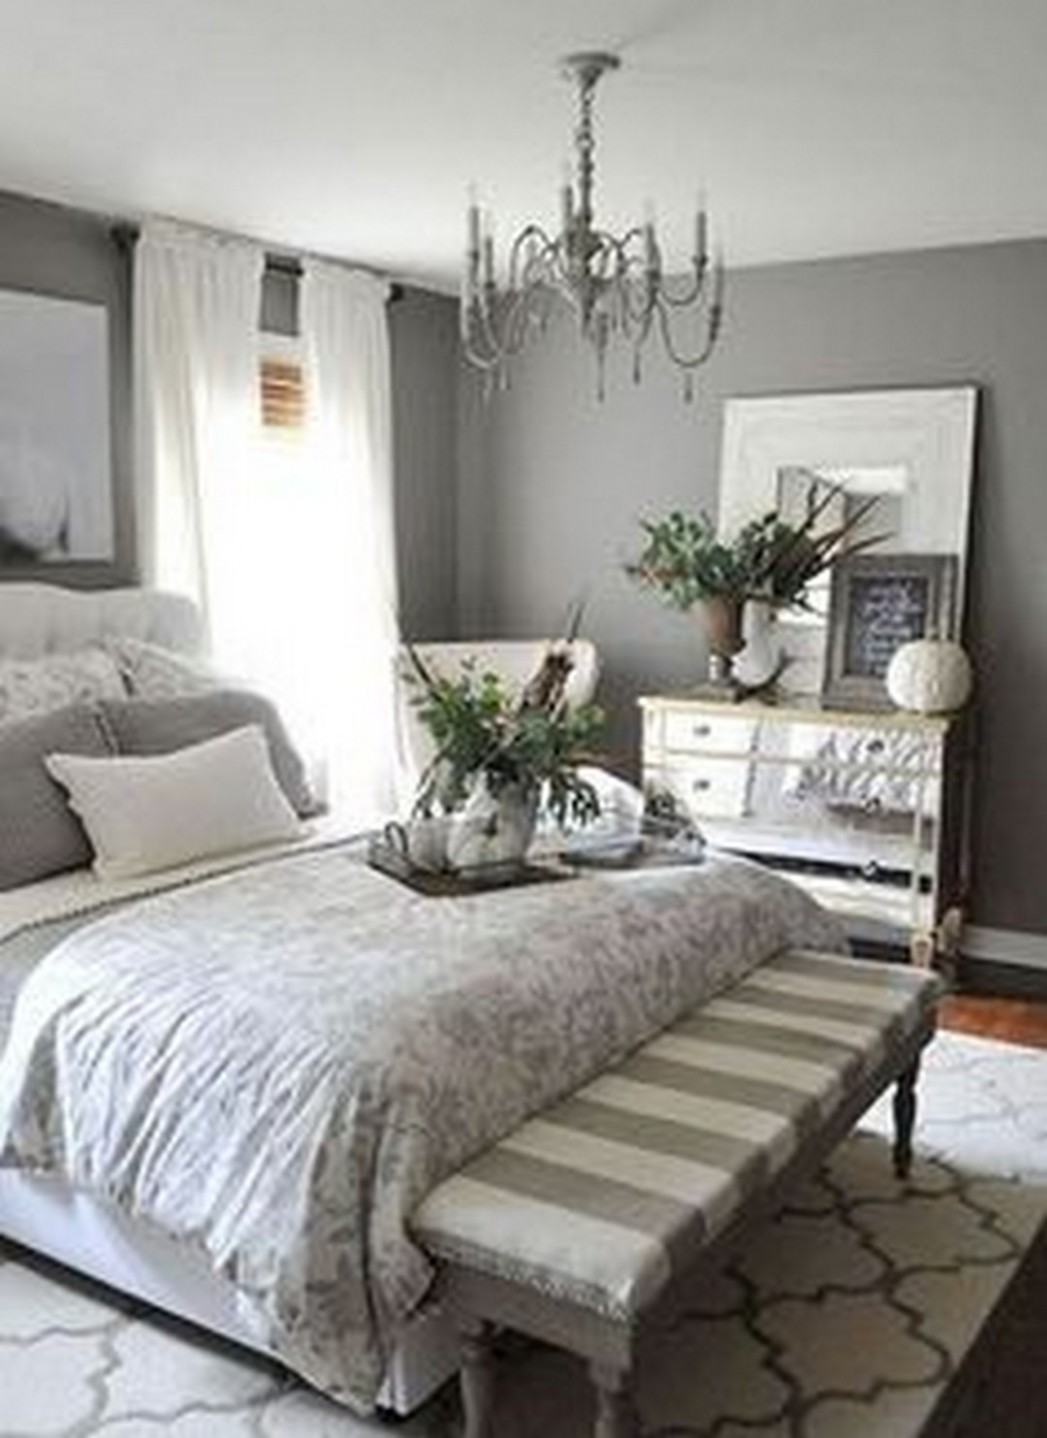 How to Maximize Bedding Appearance by Applying Farmhouse Master  - Master Bedroom Quilt Ideas